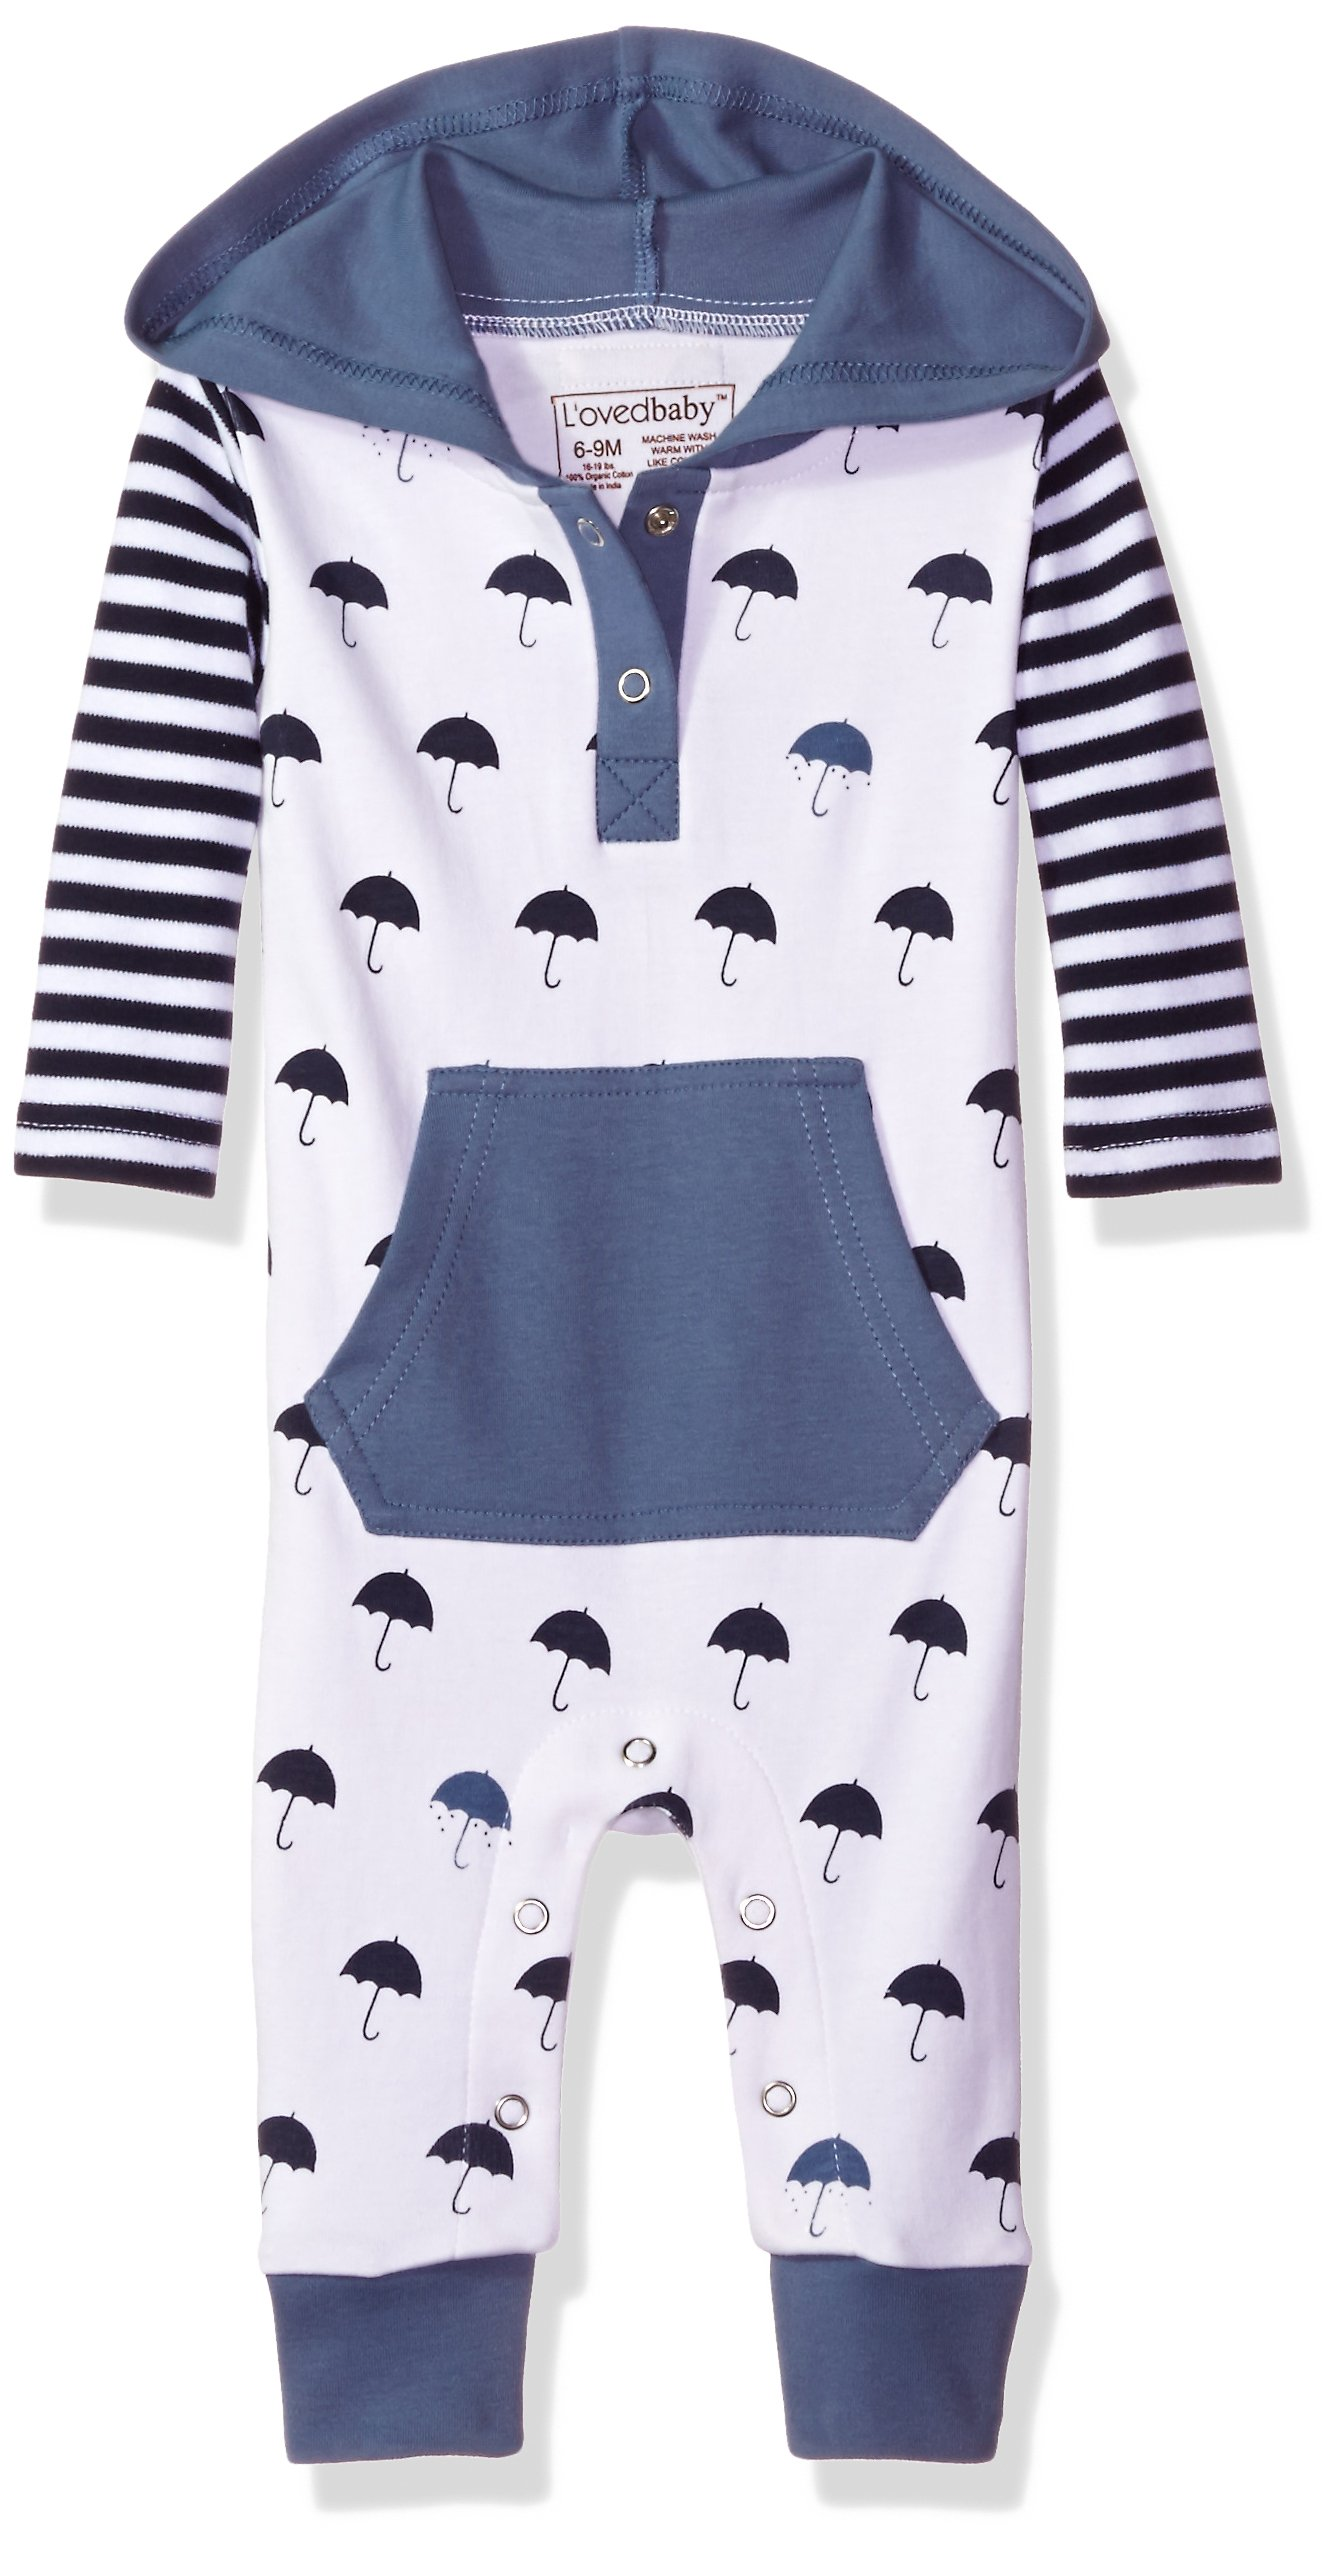 L'ovedbaby Baby Organic Cotton Hooded Long-Sleeve Romper, Slate Umbrella, 18/24m